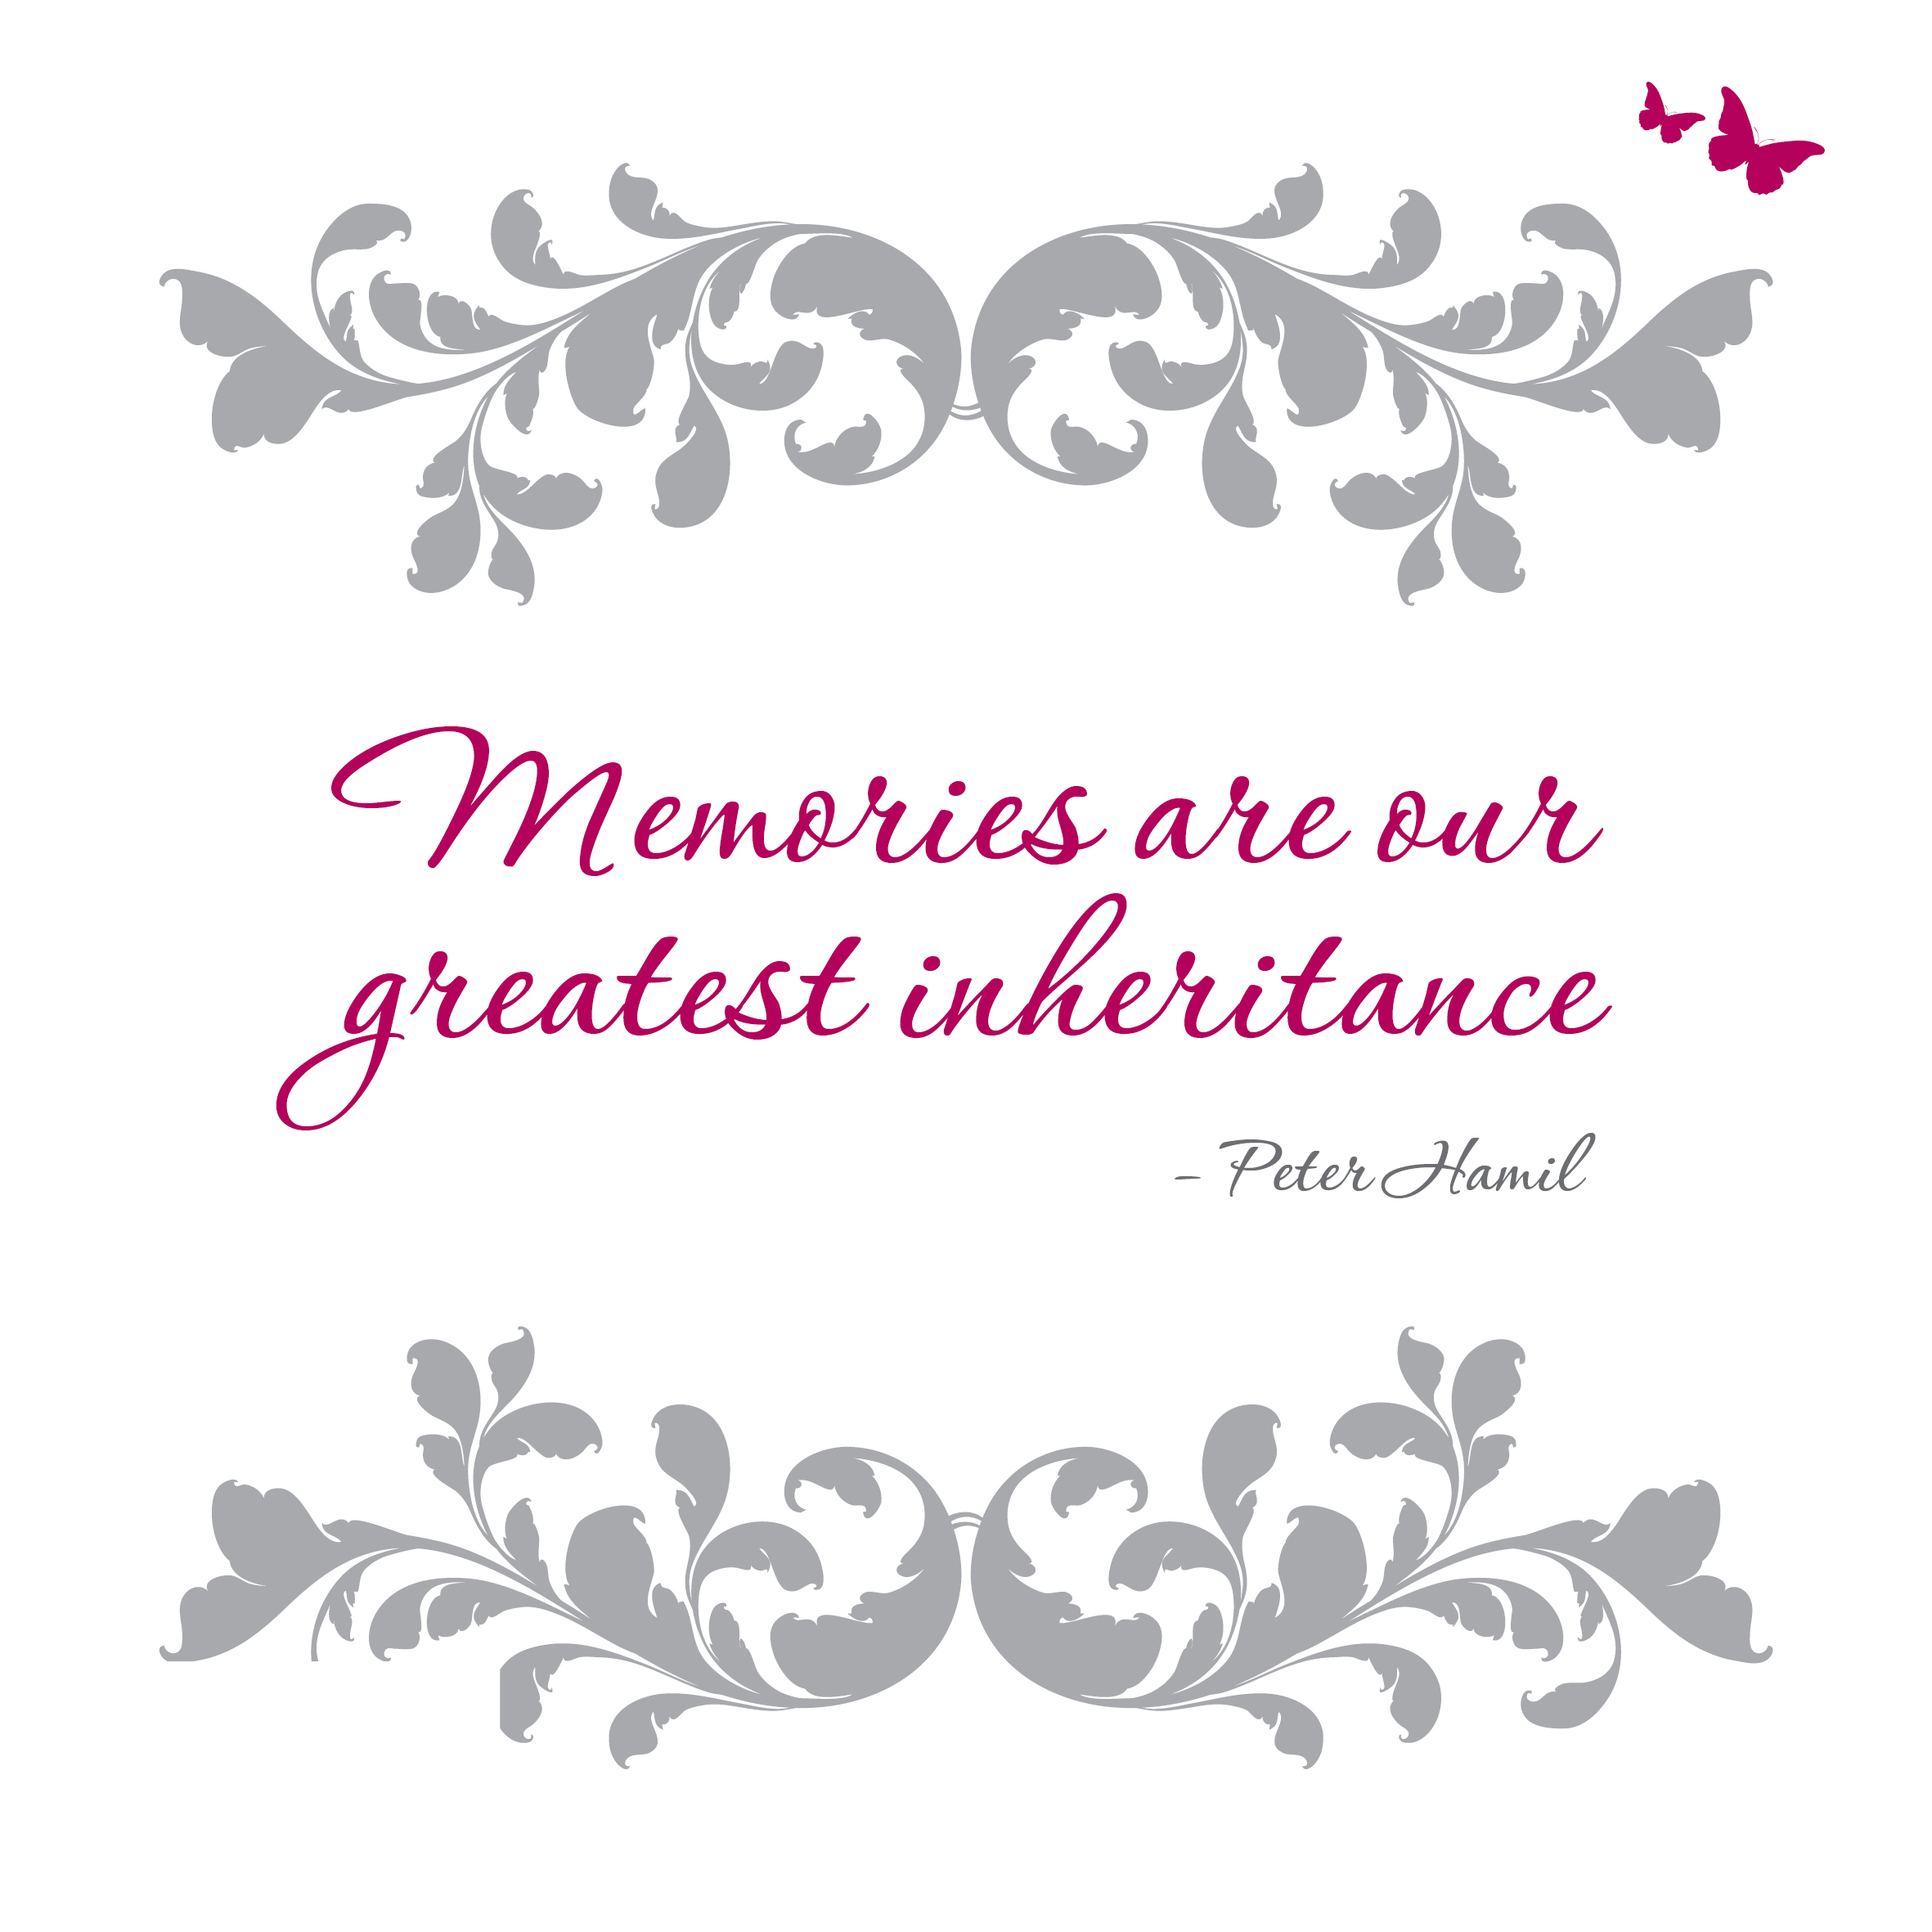 Sweet Memories Quotes And Sayings: Nicollejenkins